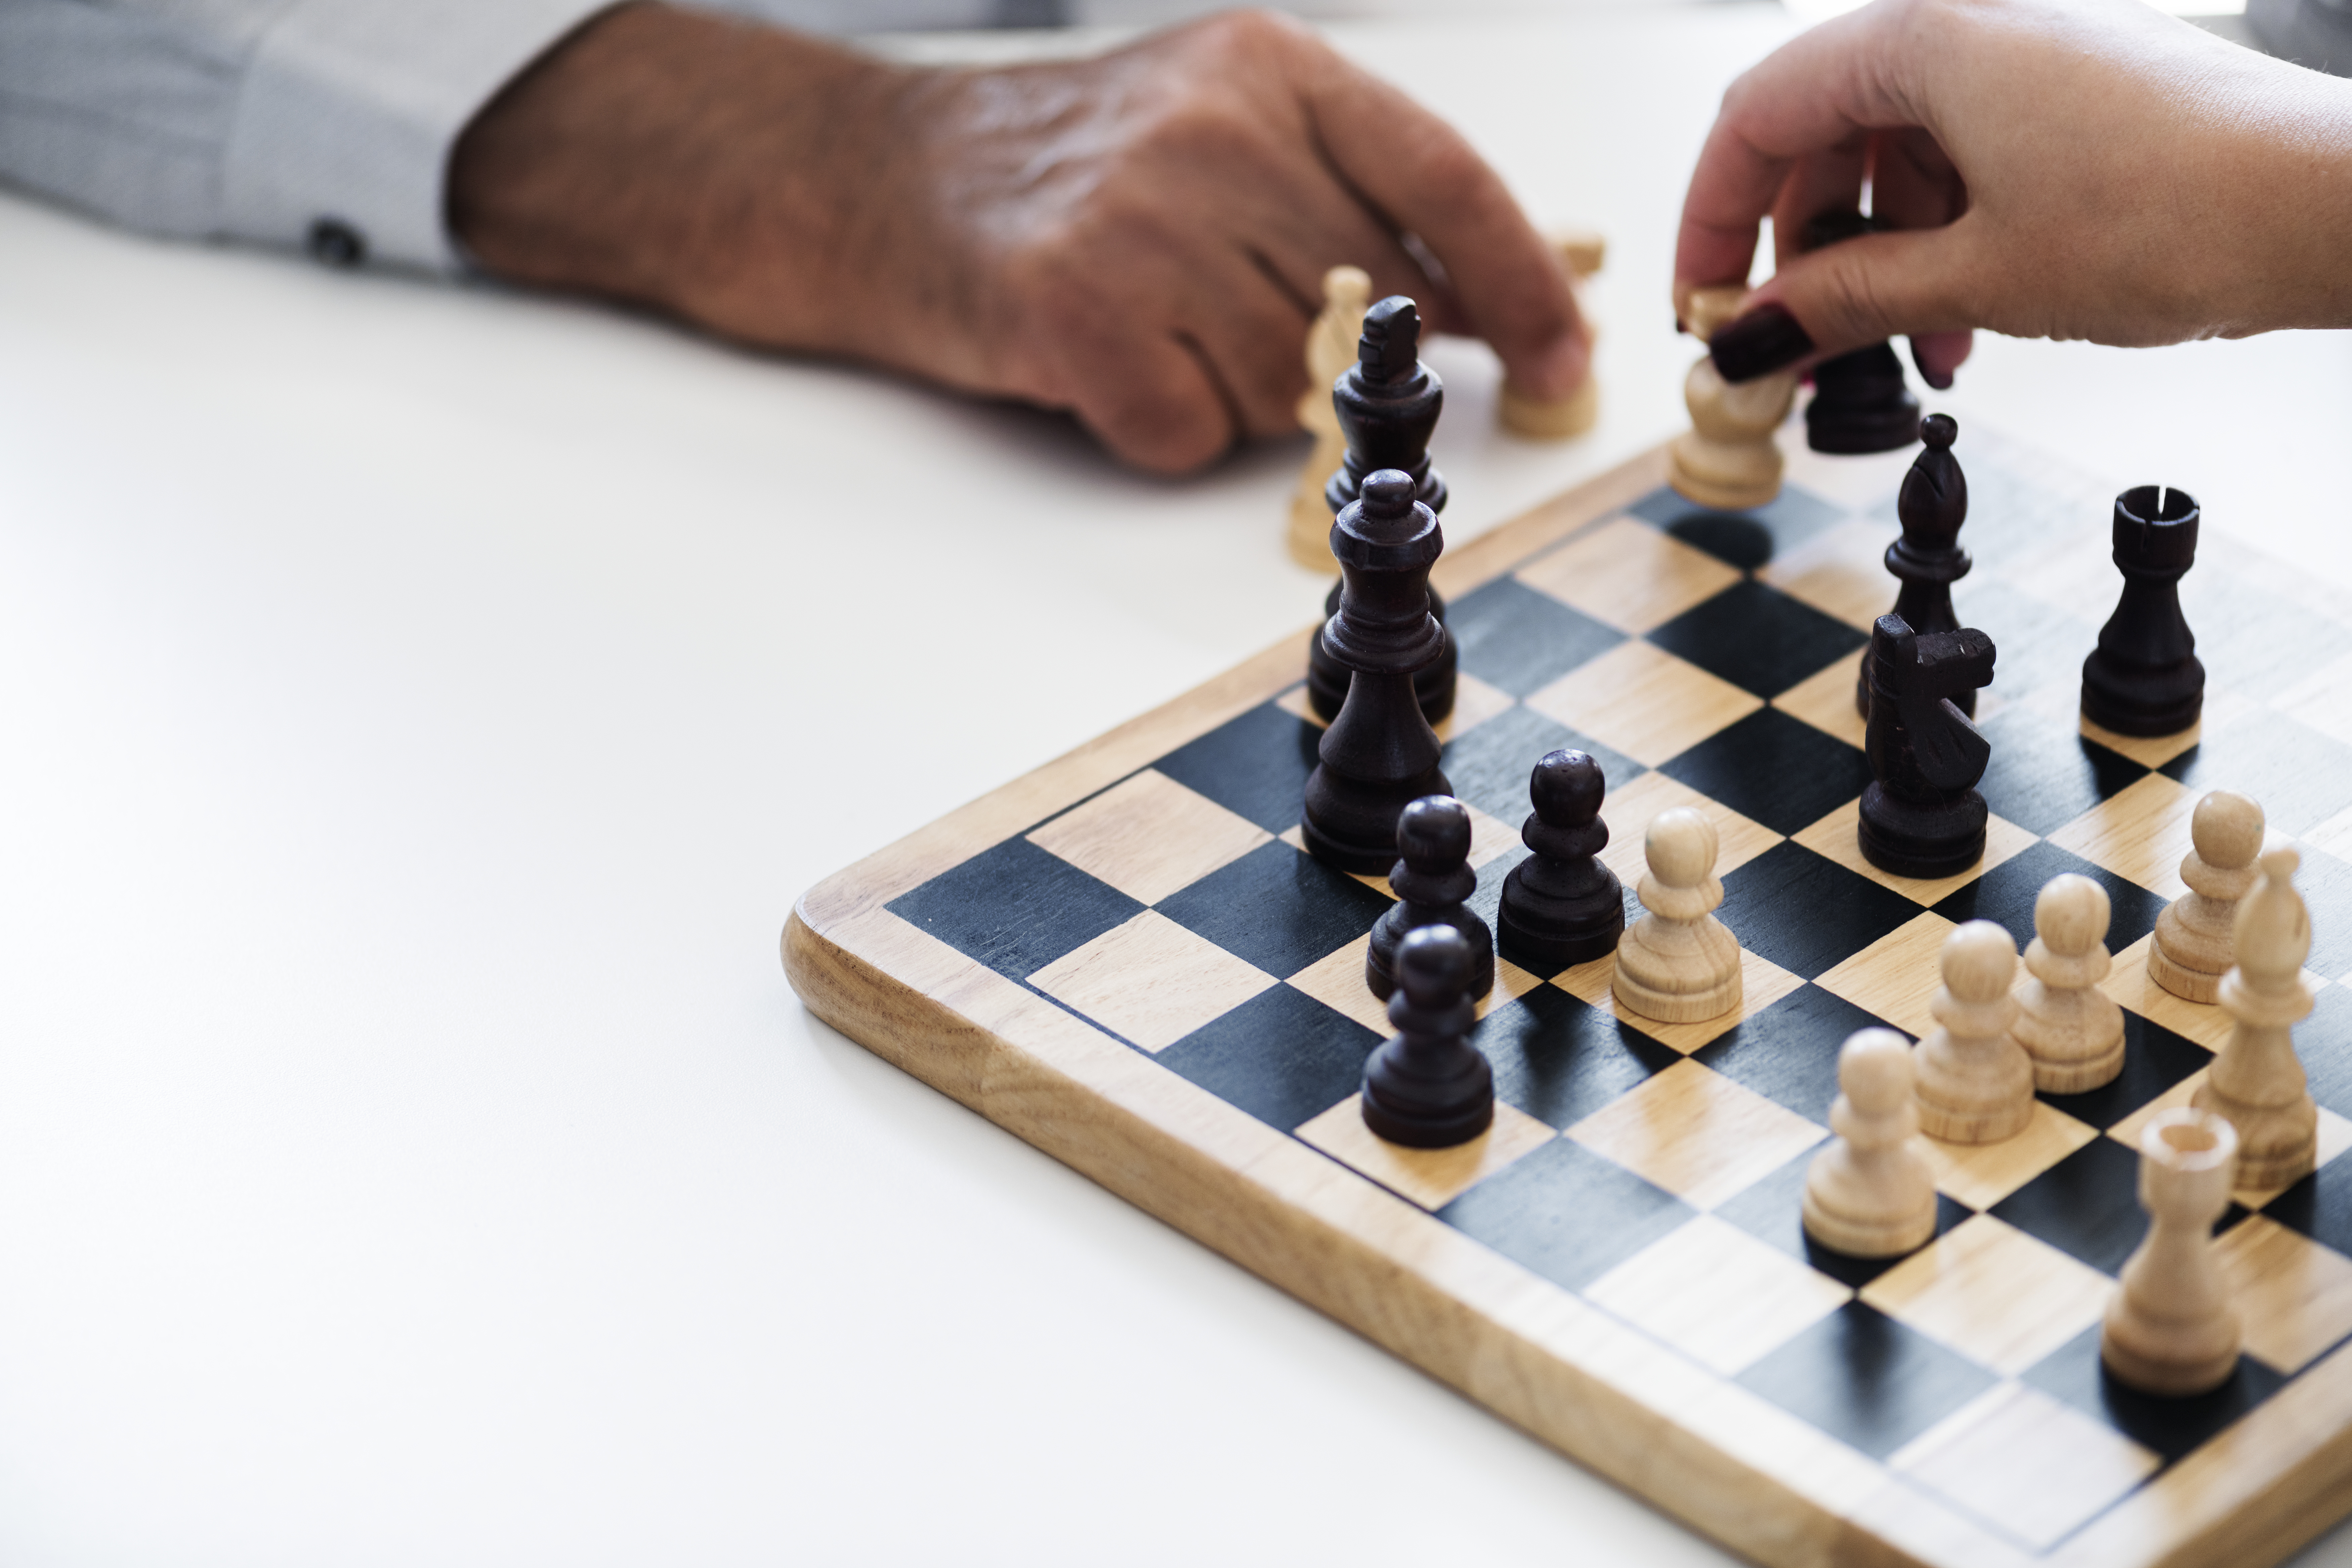 Chess game showing two players competing